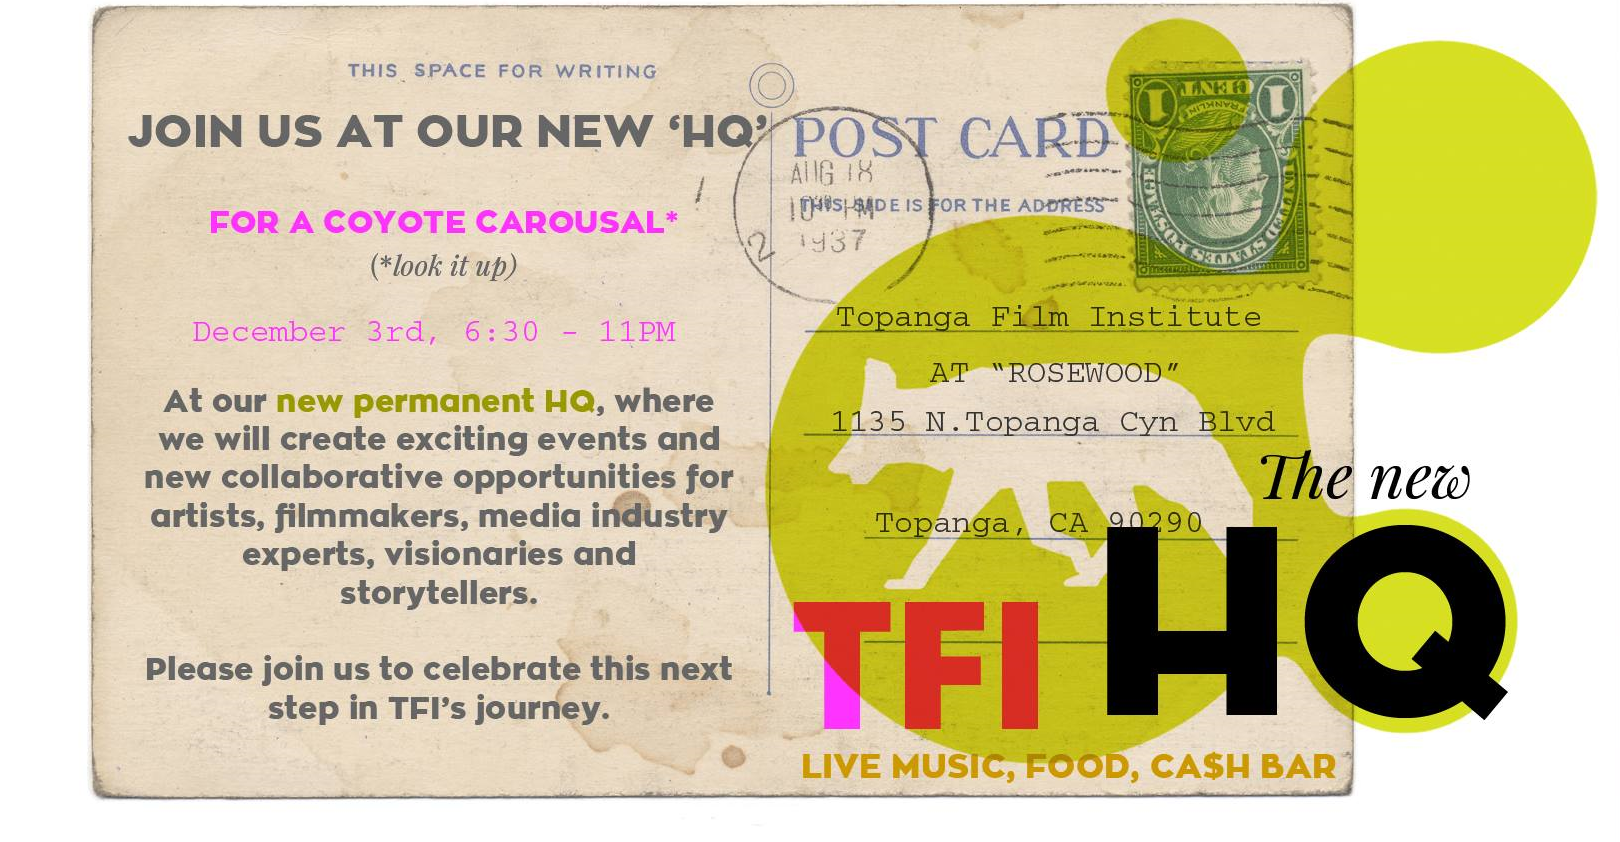 "THE COYOTE IS ON THE MOVE…       Topanga Film Institute has a new home: the new TFI HQ.   Please join us to celebrate this next step in TFI's journey!       PLEASE RSVP HERE:   info@topangafilminstitute.org     Topanga Film Institute HQ   Rosewood, 1135 N Topanga Canyon Blvd, Topanga, CA 90290    Date:  December 3  Time:  6.30 - 11 PM    Music, food and cash bar.      Welcome!      BIG THANKS TO OUR SPONSORS AND PARTNERS,  BONNIE MORGAN AND JANEK DOMBROWA!      ""Rosewood in Topanga is a new workplace that aspires to be a nexus of art and technology in Topanga Canyon. We are excited to announce that we are now anchored by the Topanga Film Institute and Festival and our partnership with them promotes these mutual goals.""  -   Bonnie Morgan and Janek Dombrowa"